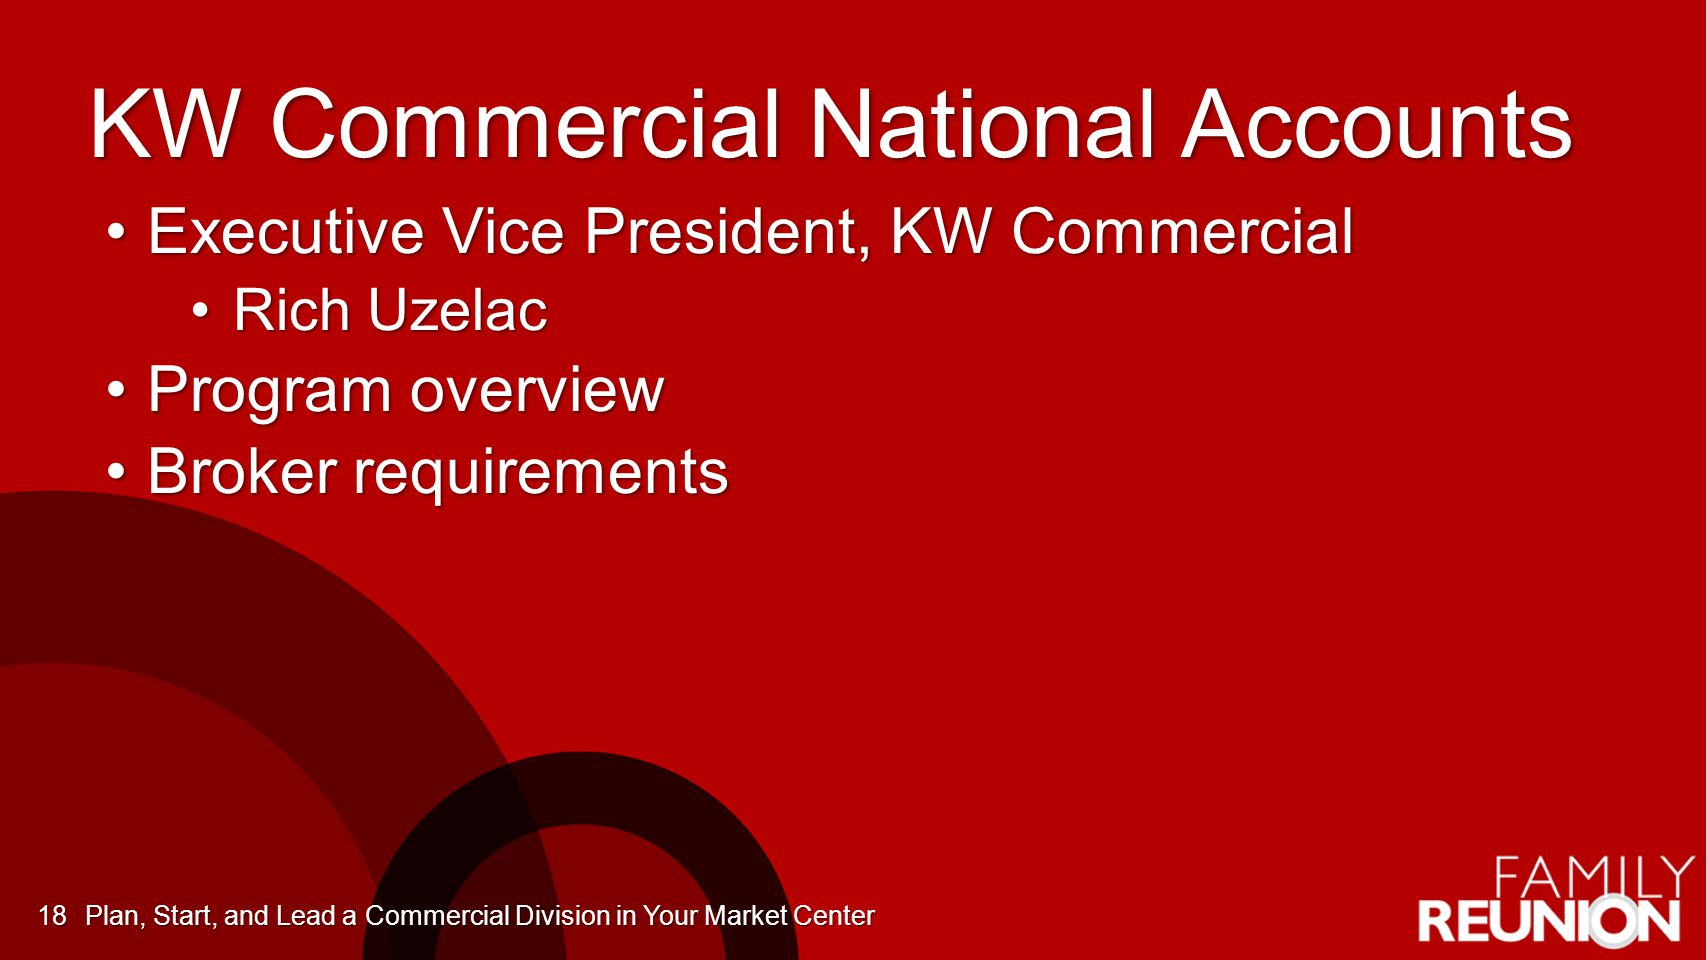 KW Commercial National Accounts Executive Vice President, KW CommercialExecutive Vice President, KW Commercial Rich UzelacRich Uzelac Program overviewProgram overview Broker requirementsBroker requirements Plan, Start, and Lead a Commercial Division in Your Market Center18